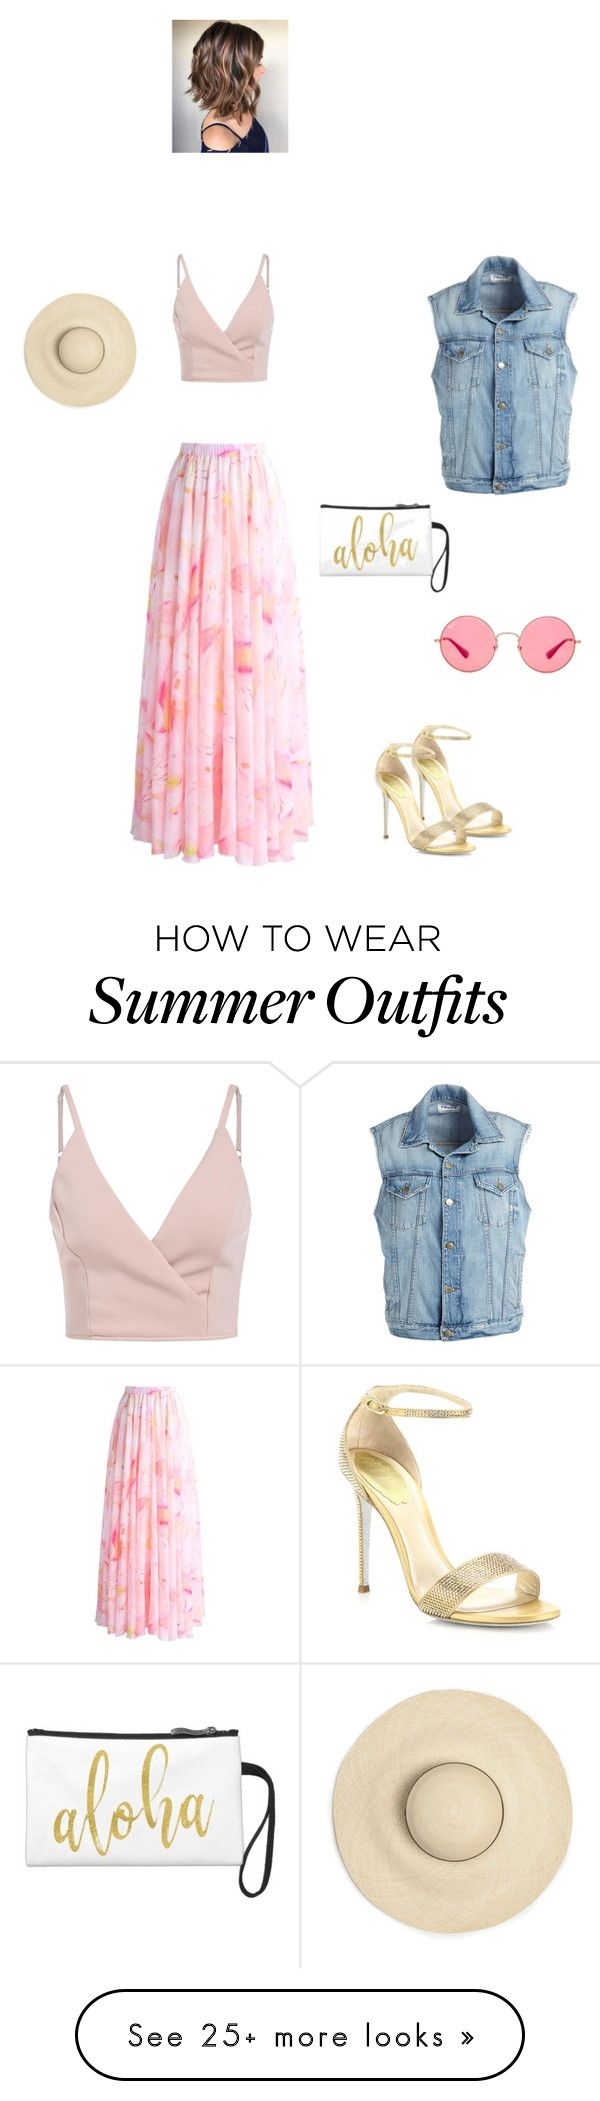 """Summer outfit"" by gaia-gaziano on Polyvore featuring Chicwish, René Caovilla, Ray-Ban and Frame"